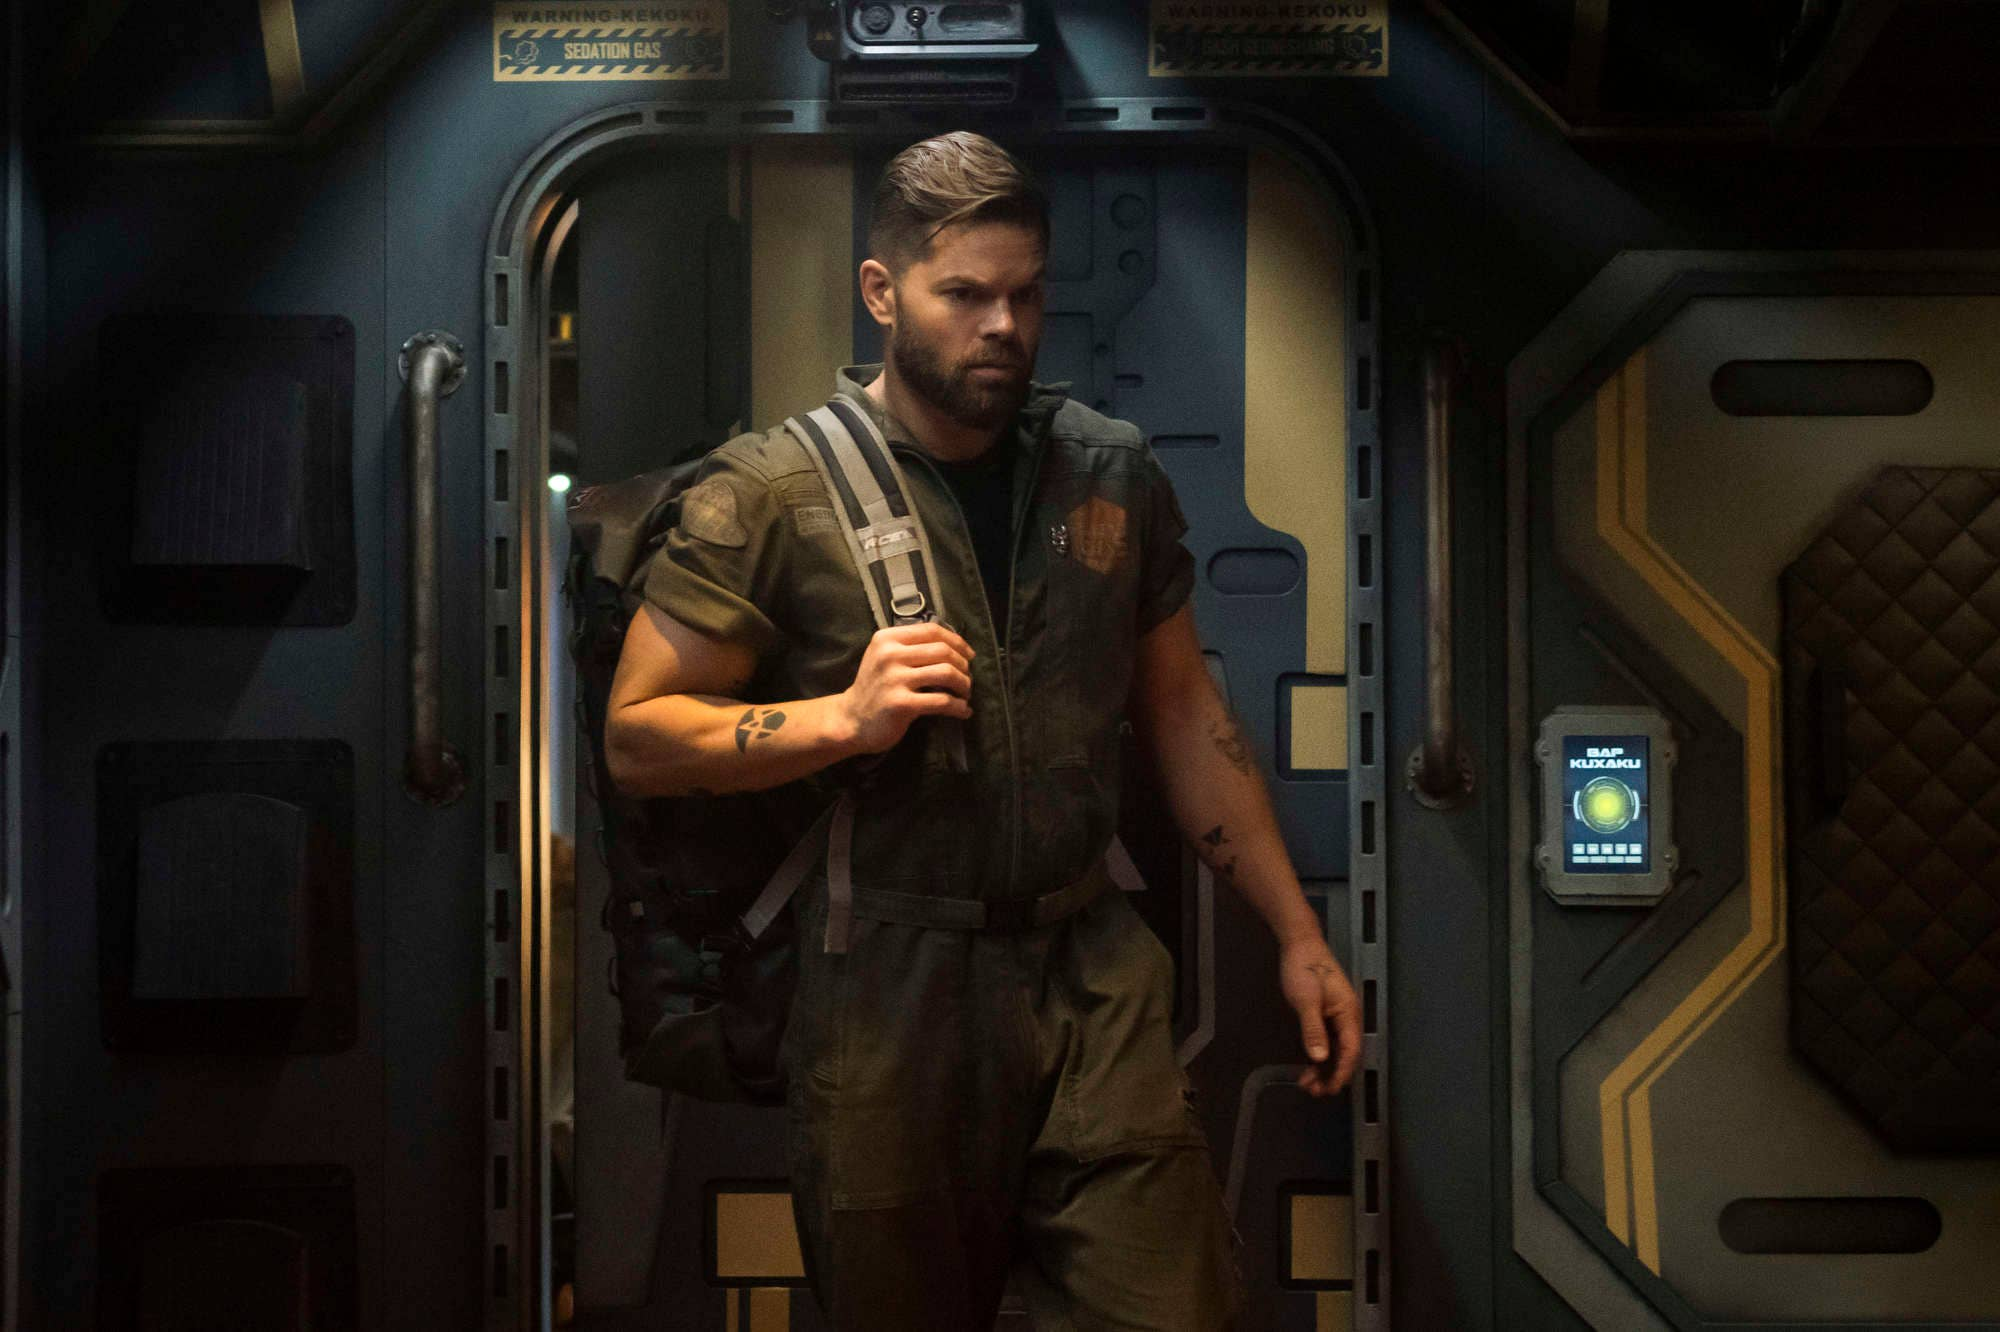 Wes Chatam as Amos in The Expanse season 5